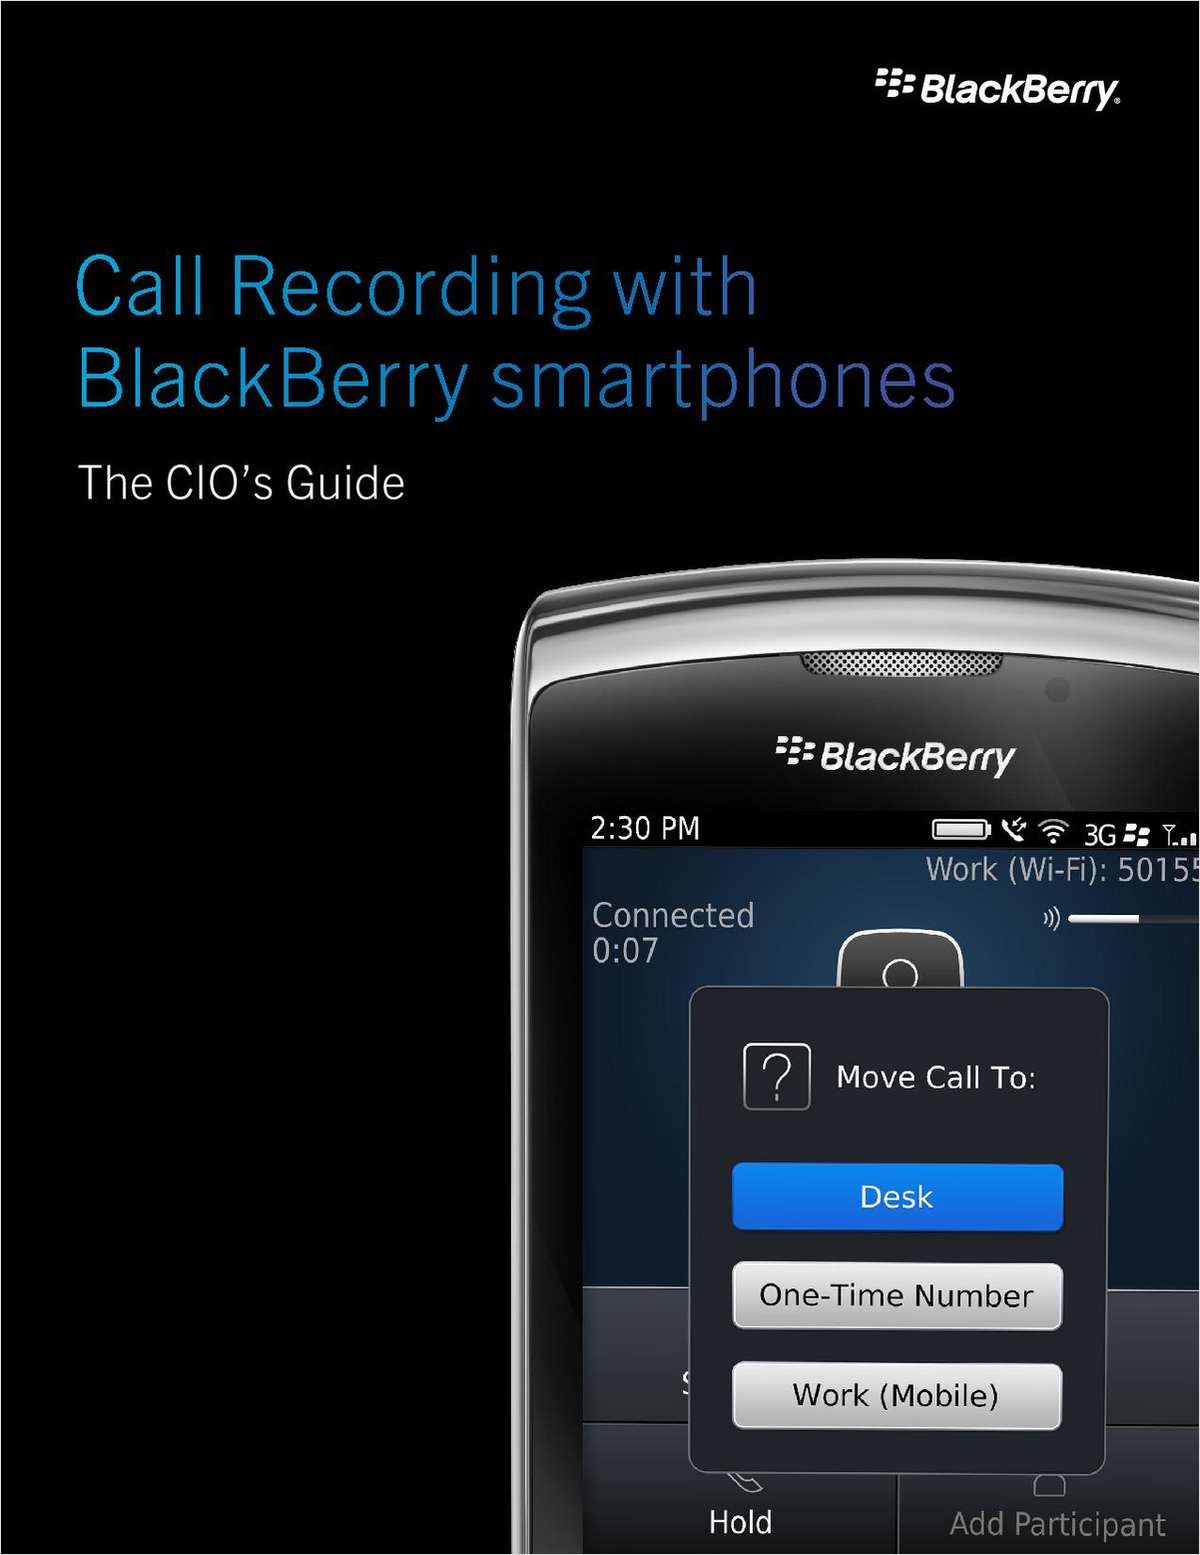 Stay Compliant AND Improve Service: Extending Call Recording to Mobile Devices